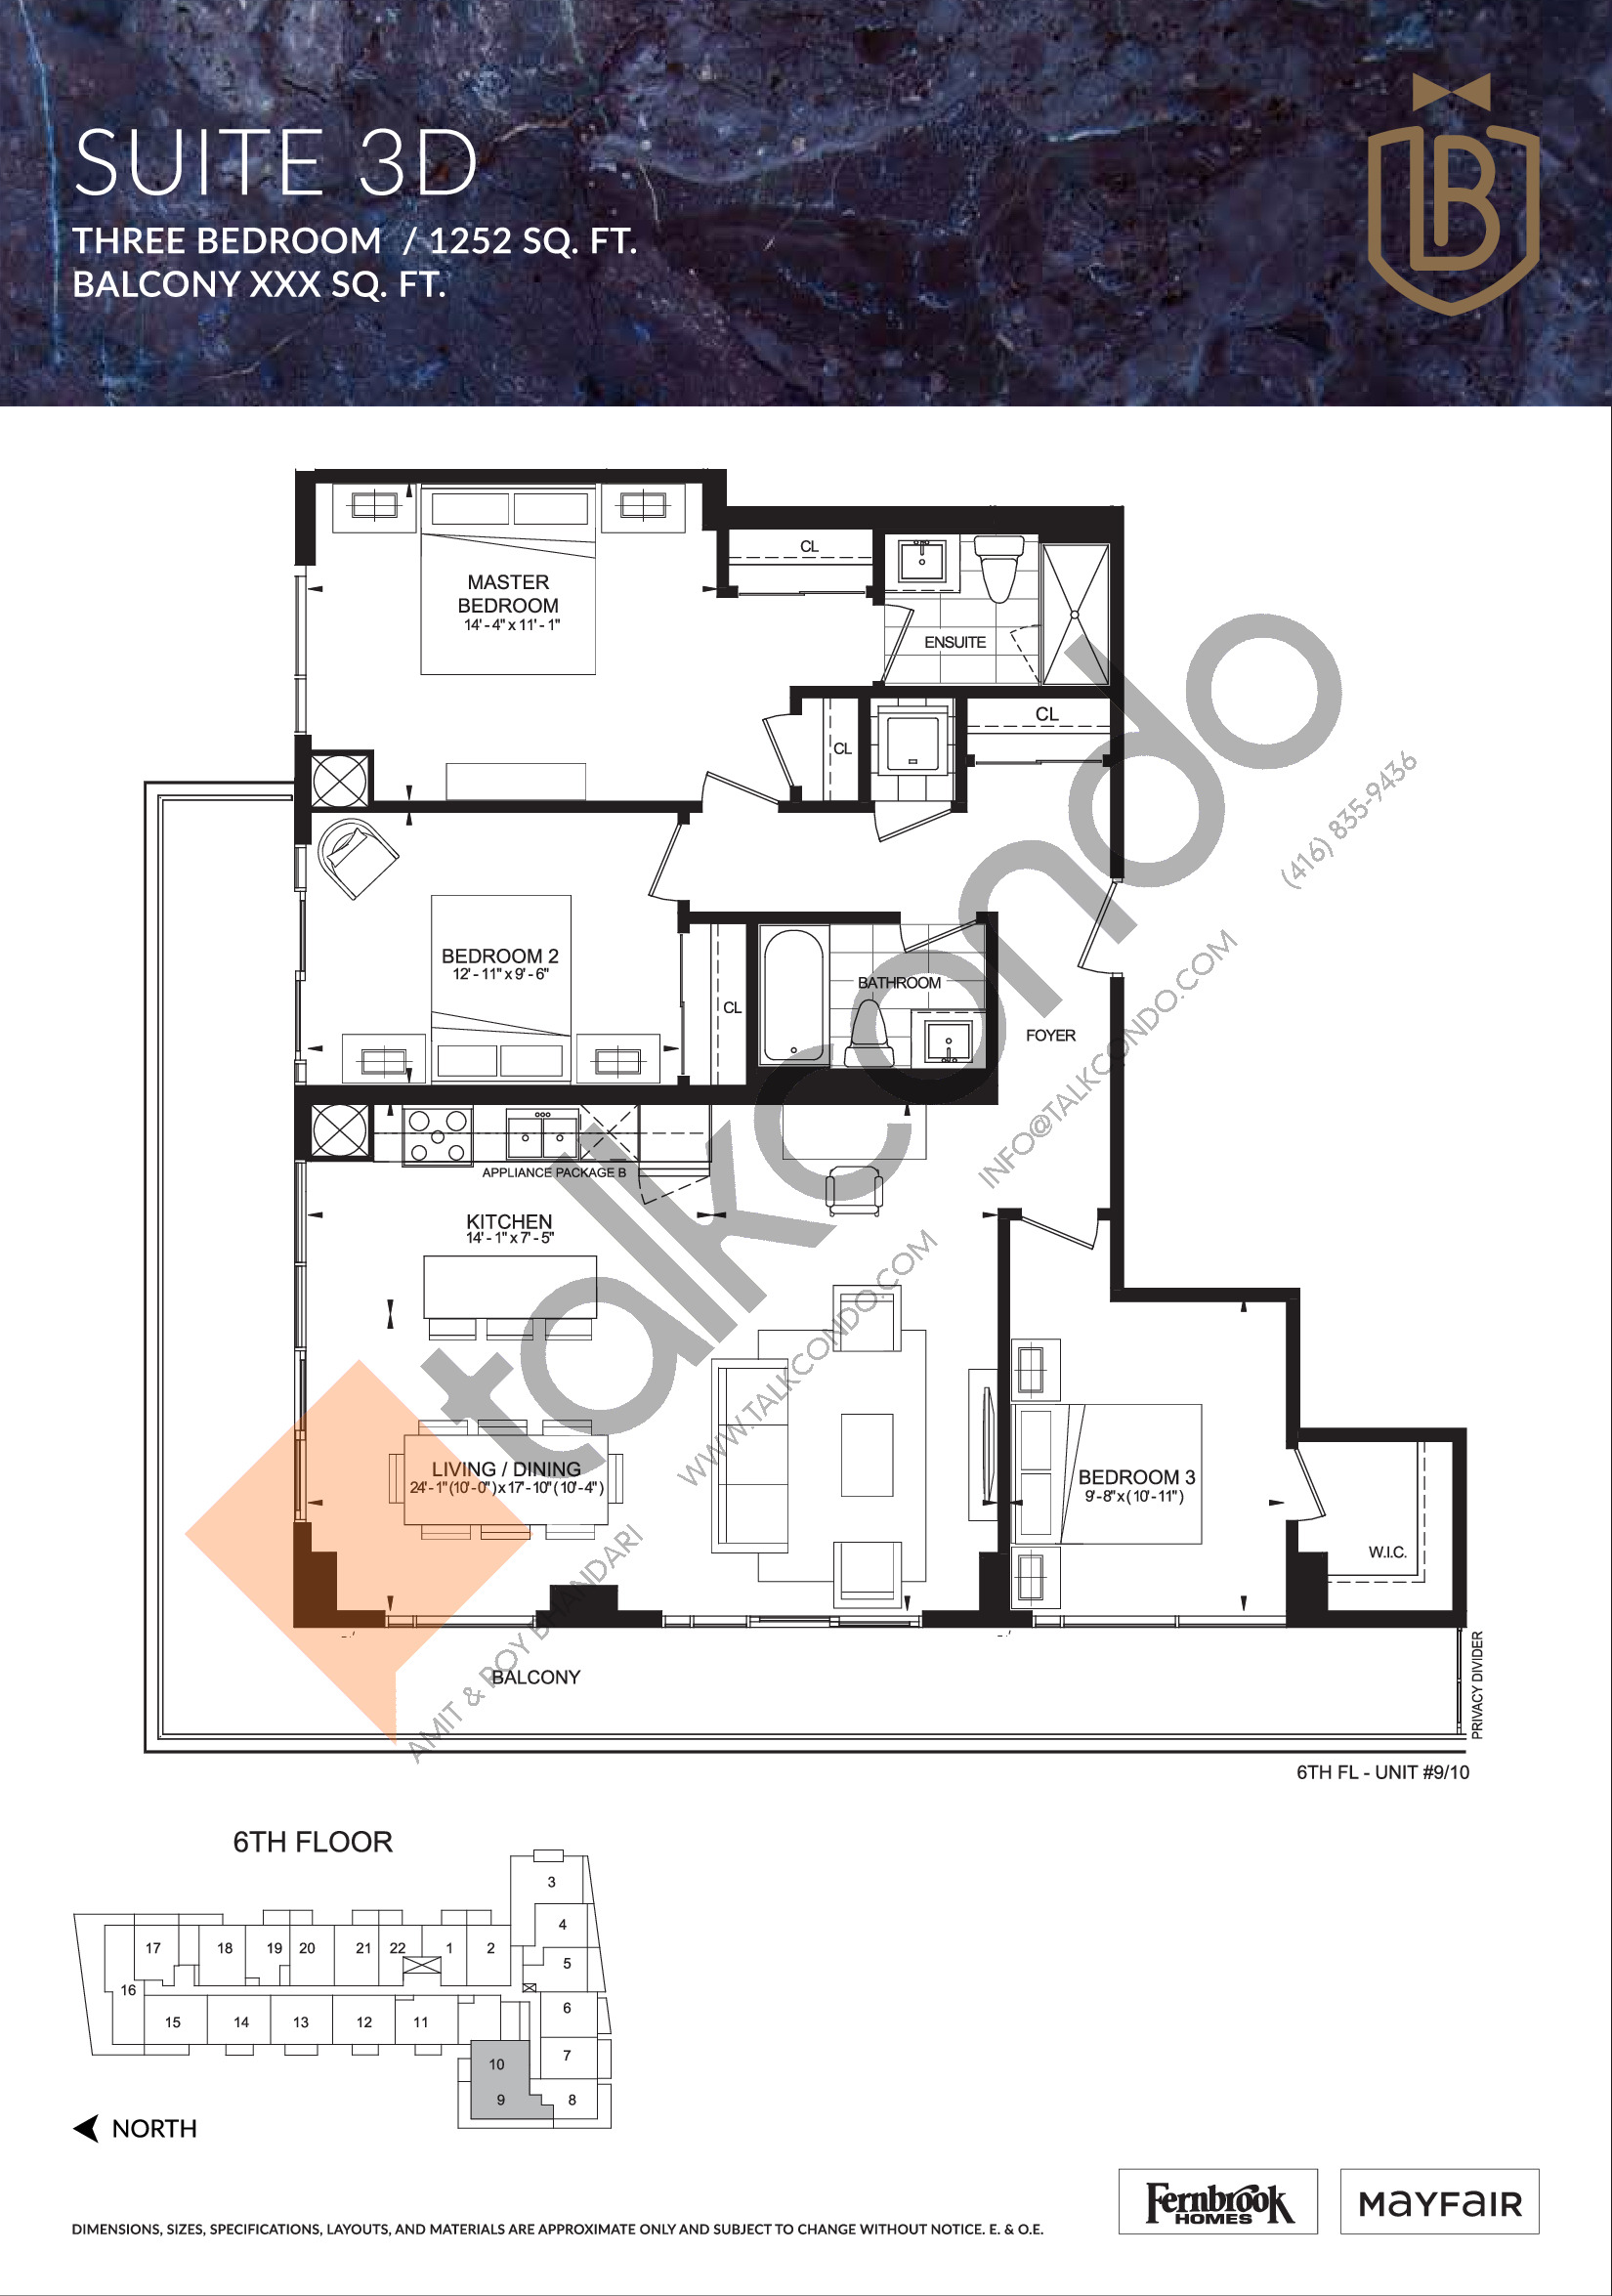 Suite 3D Floor Plan at The Butler Condos - 1252 sq.ft